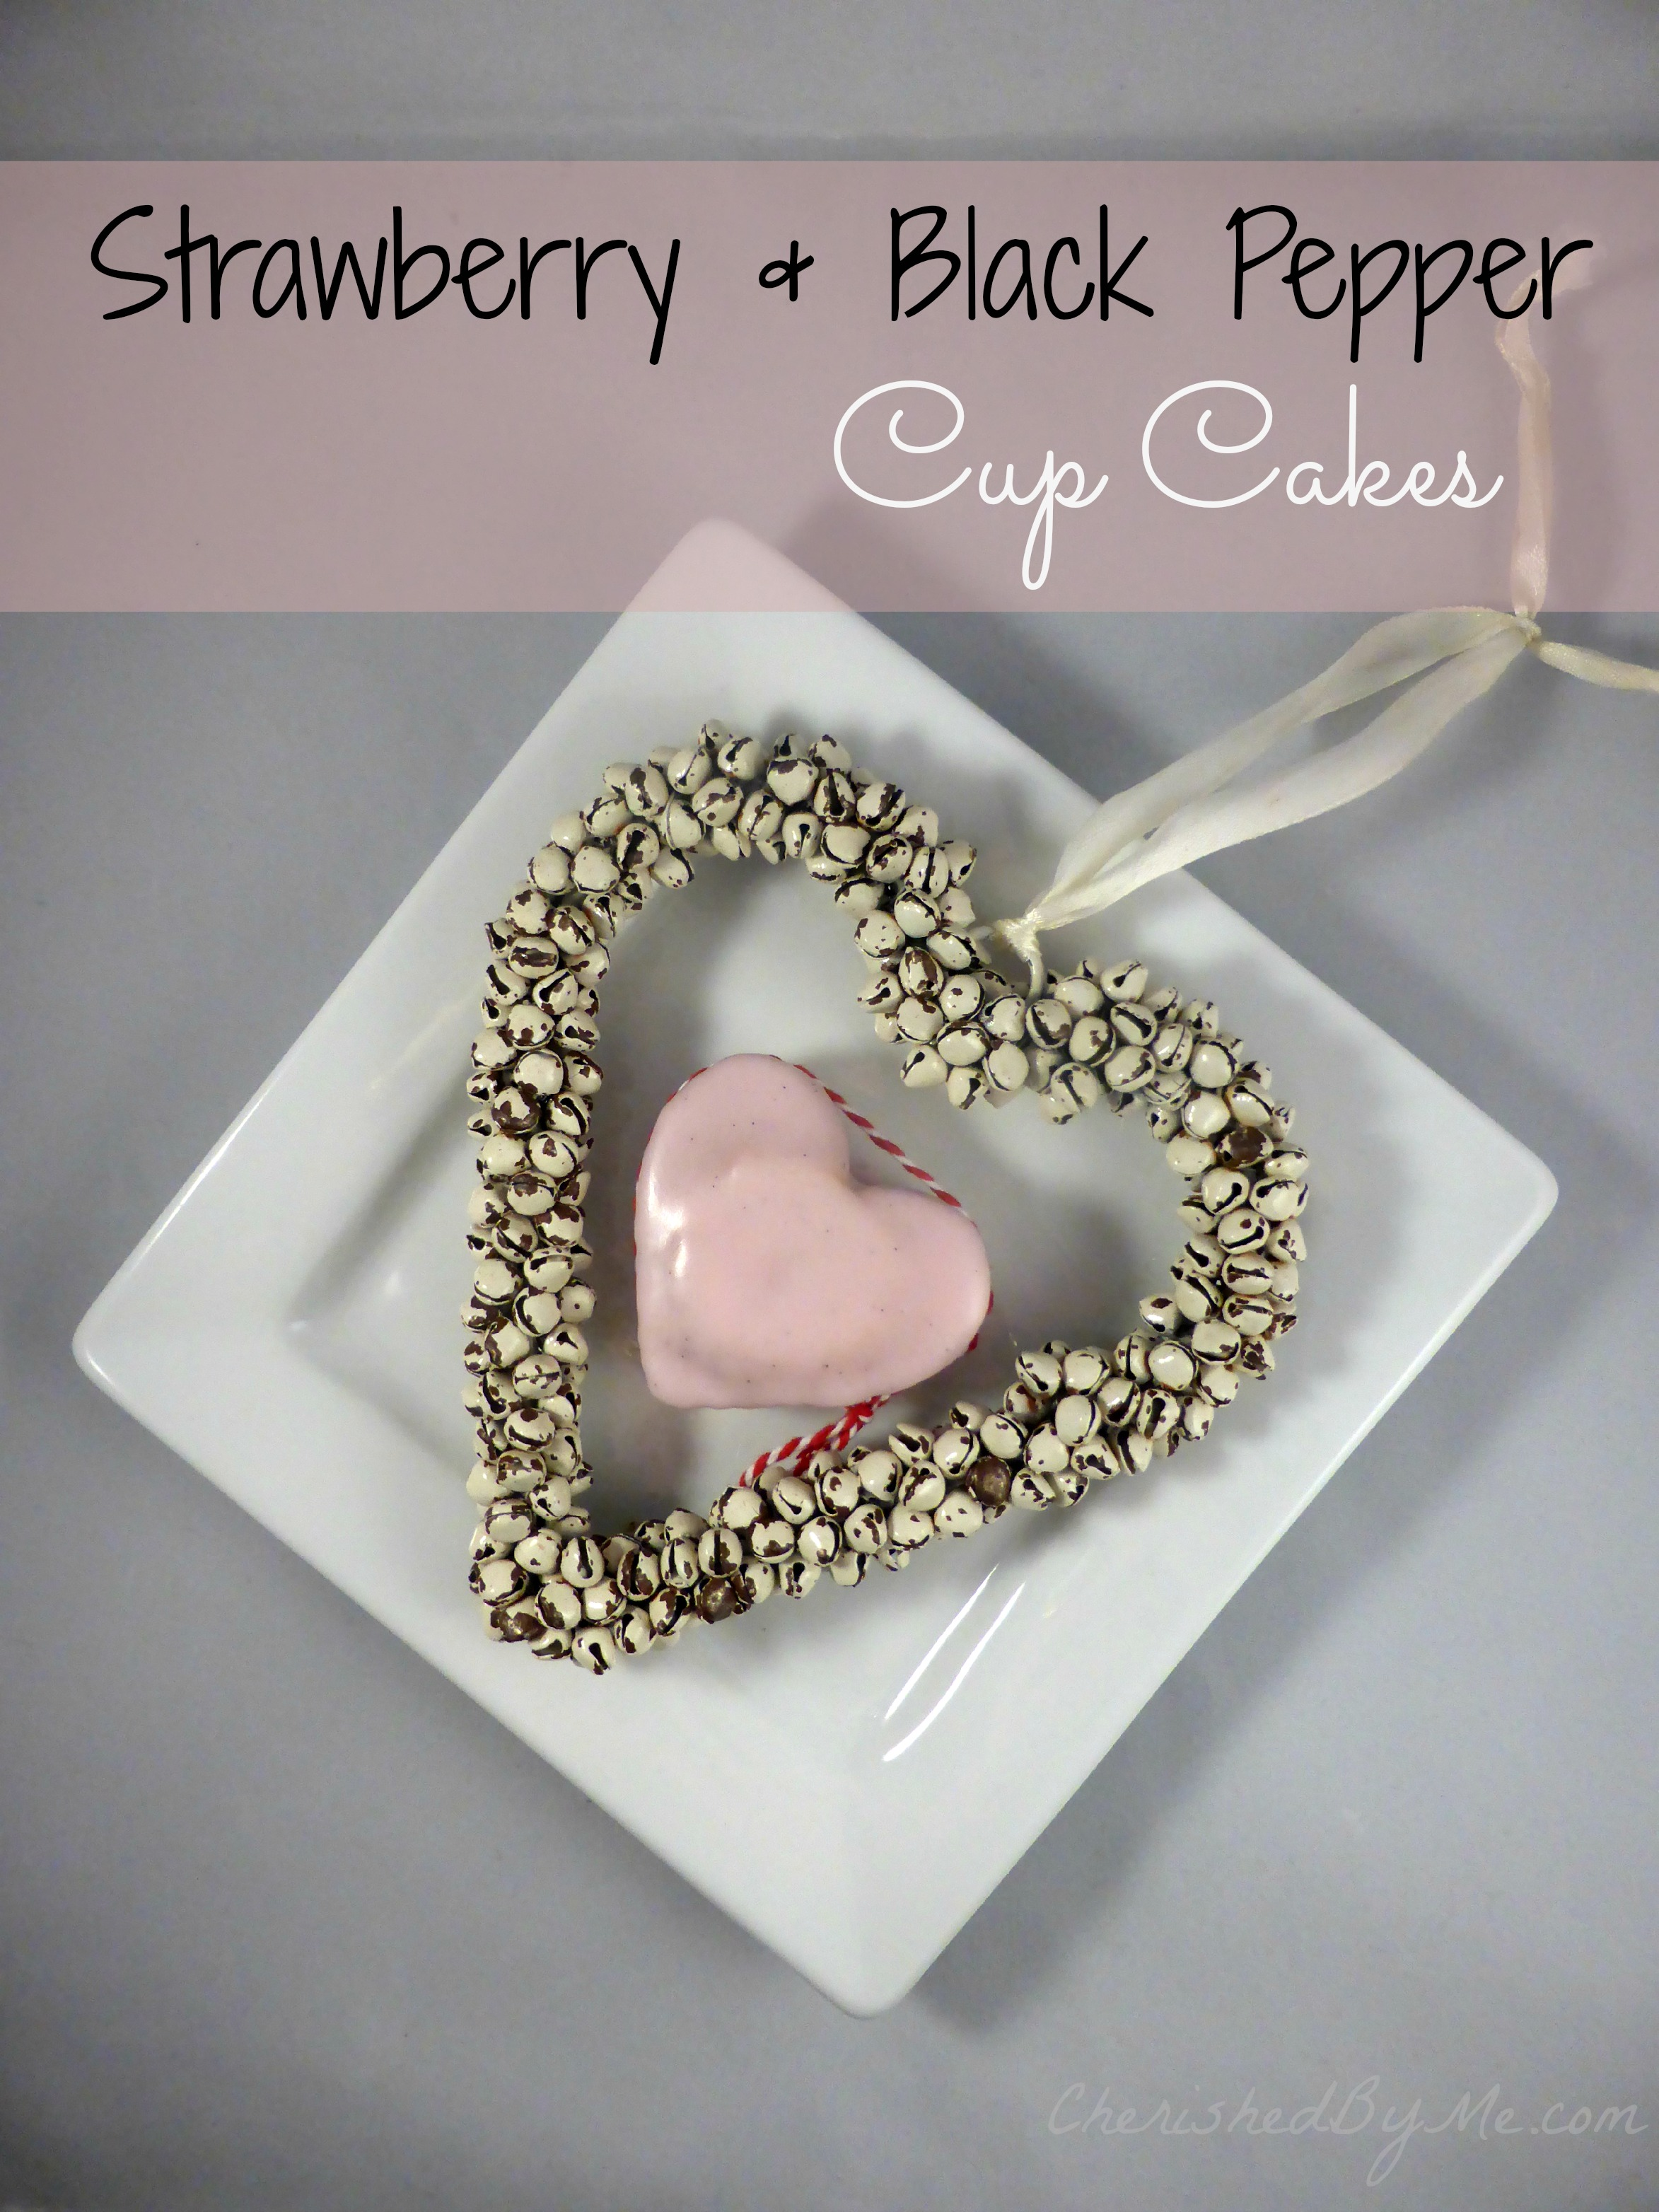 Strawberry and Black Pepper Cupcakes